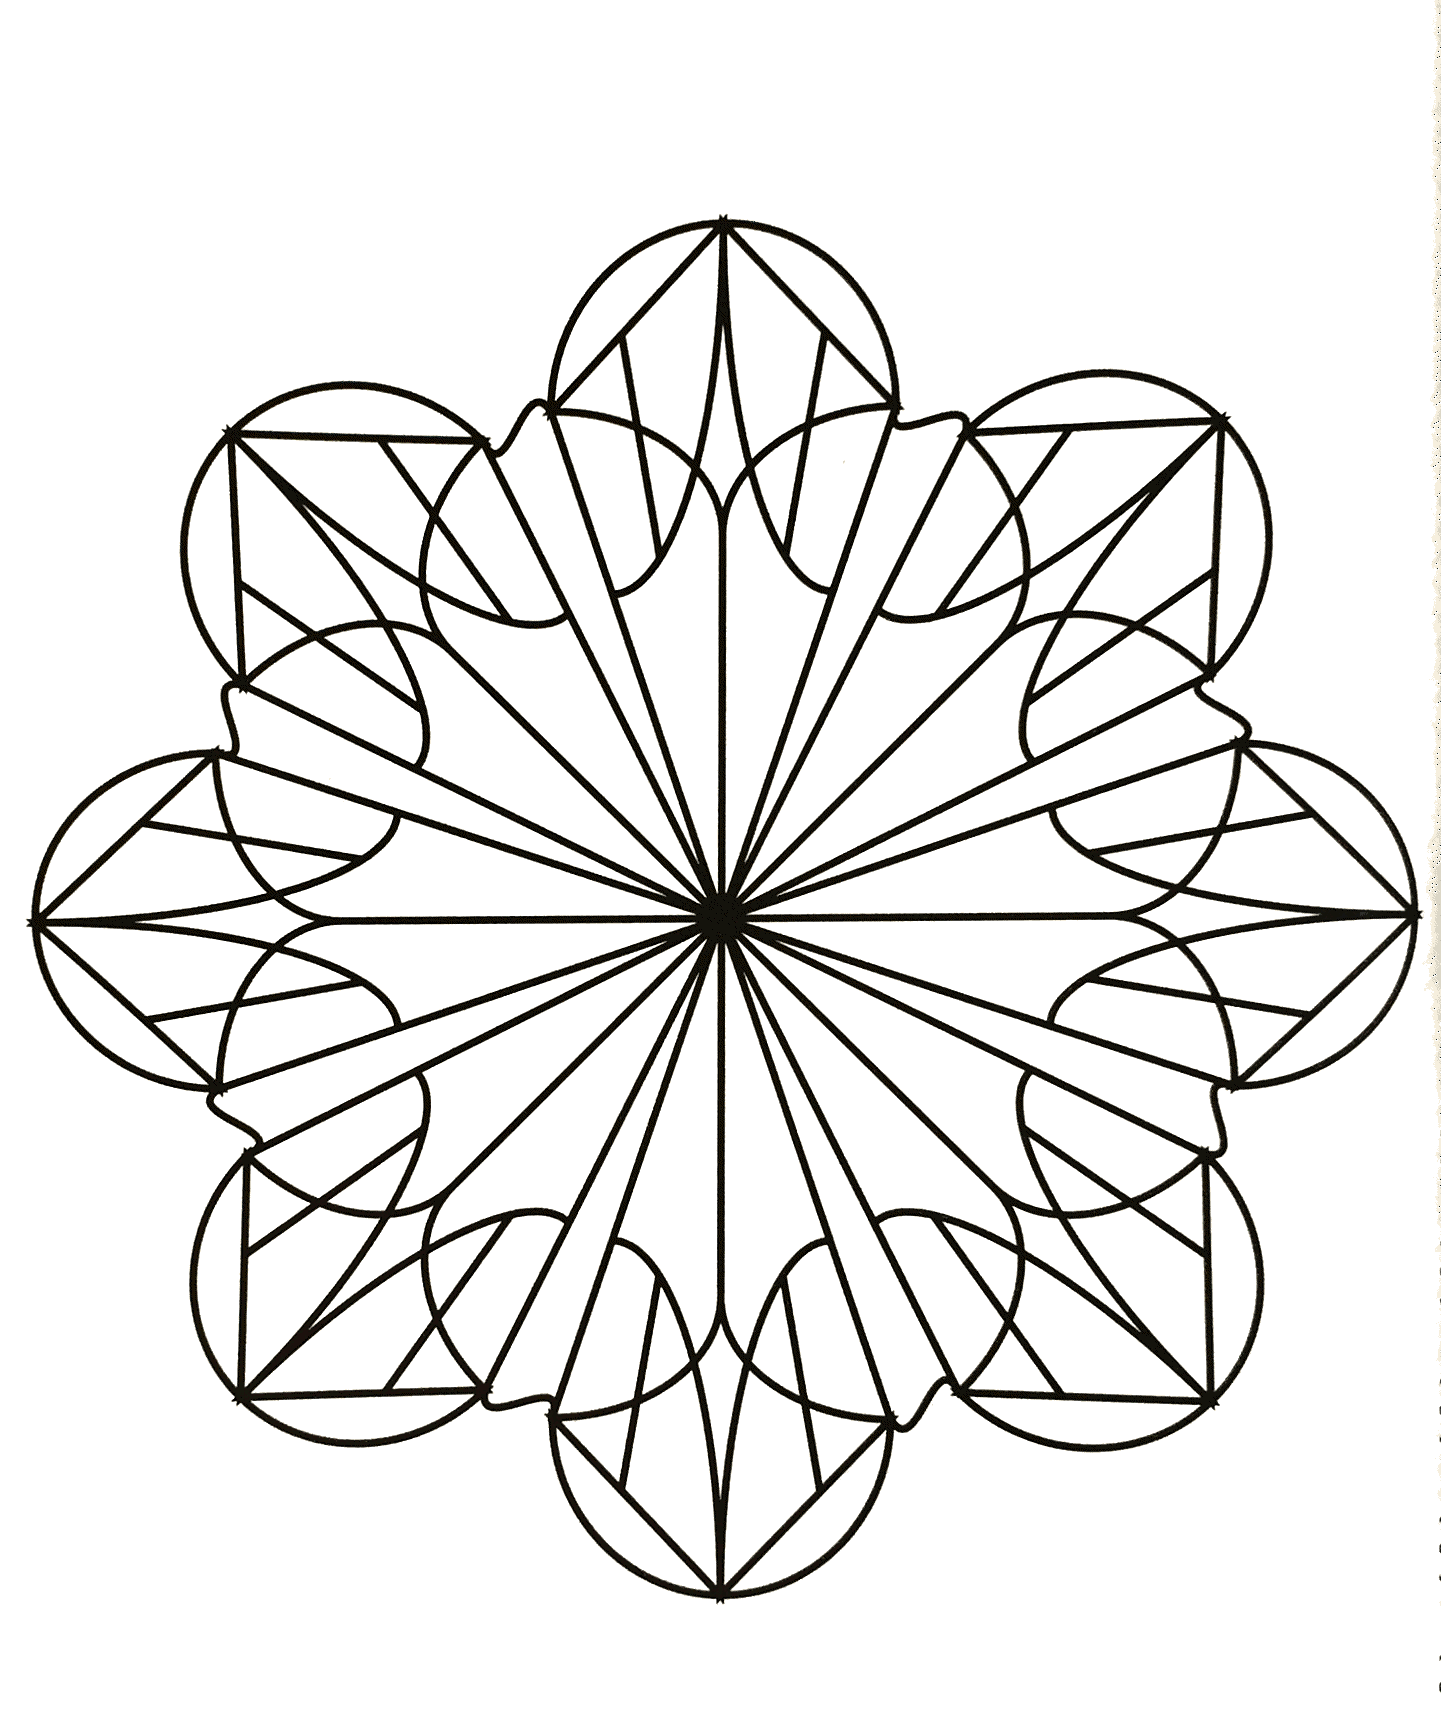 Just few details in this easy Mandala, which will suit kids and adults looking for not too complicated coloring pages. Completing a coloring sheet gives your kids a sense of accomplishment, which builds their self esteem and confidence.